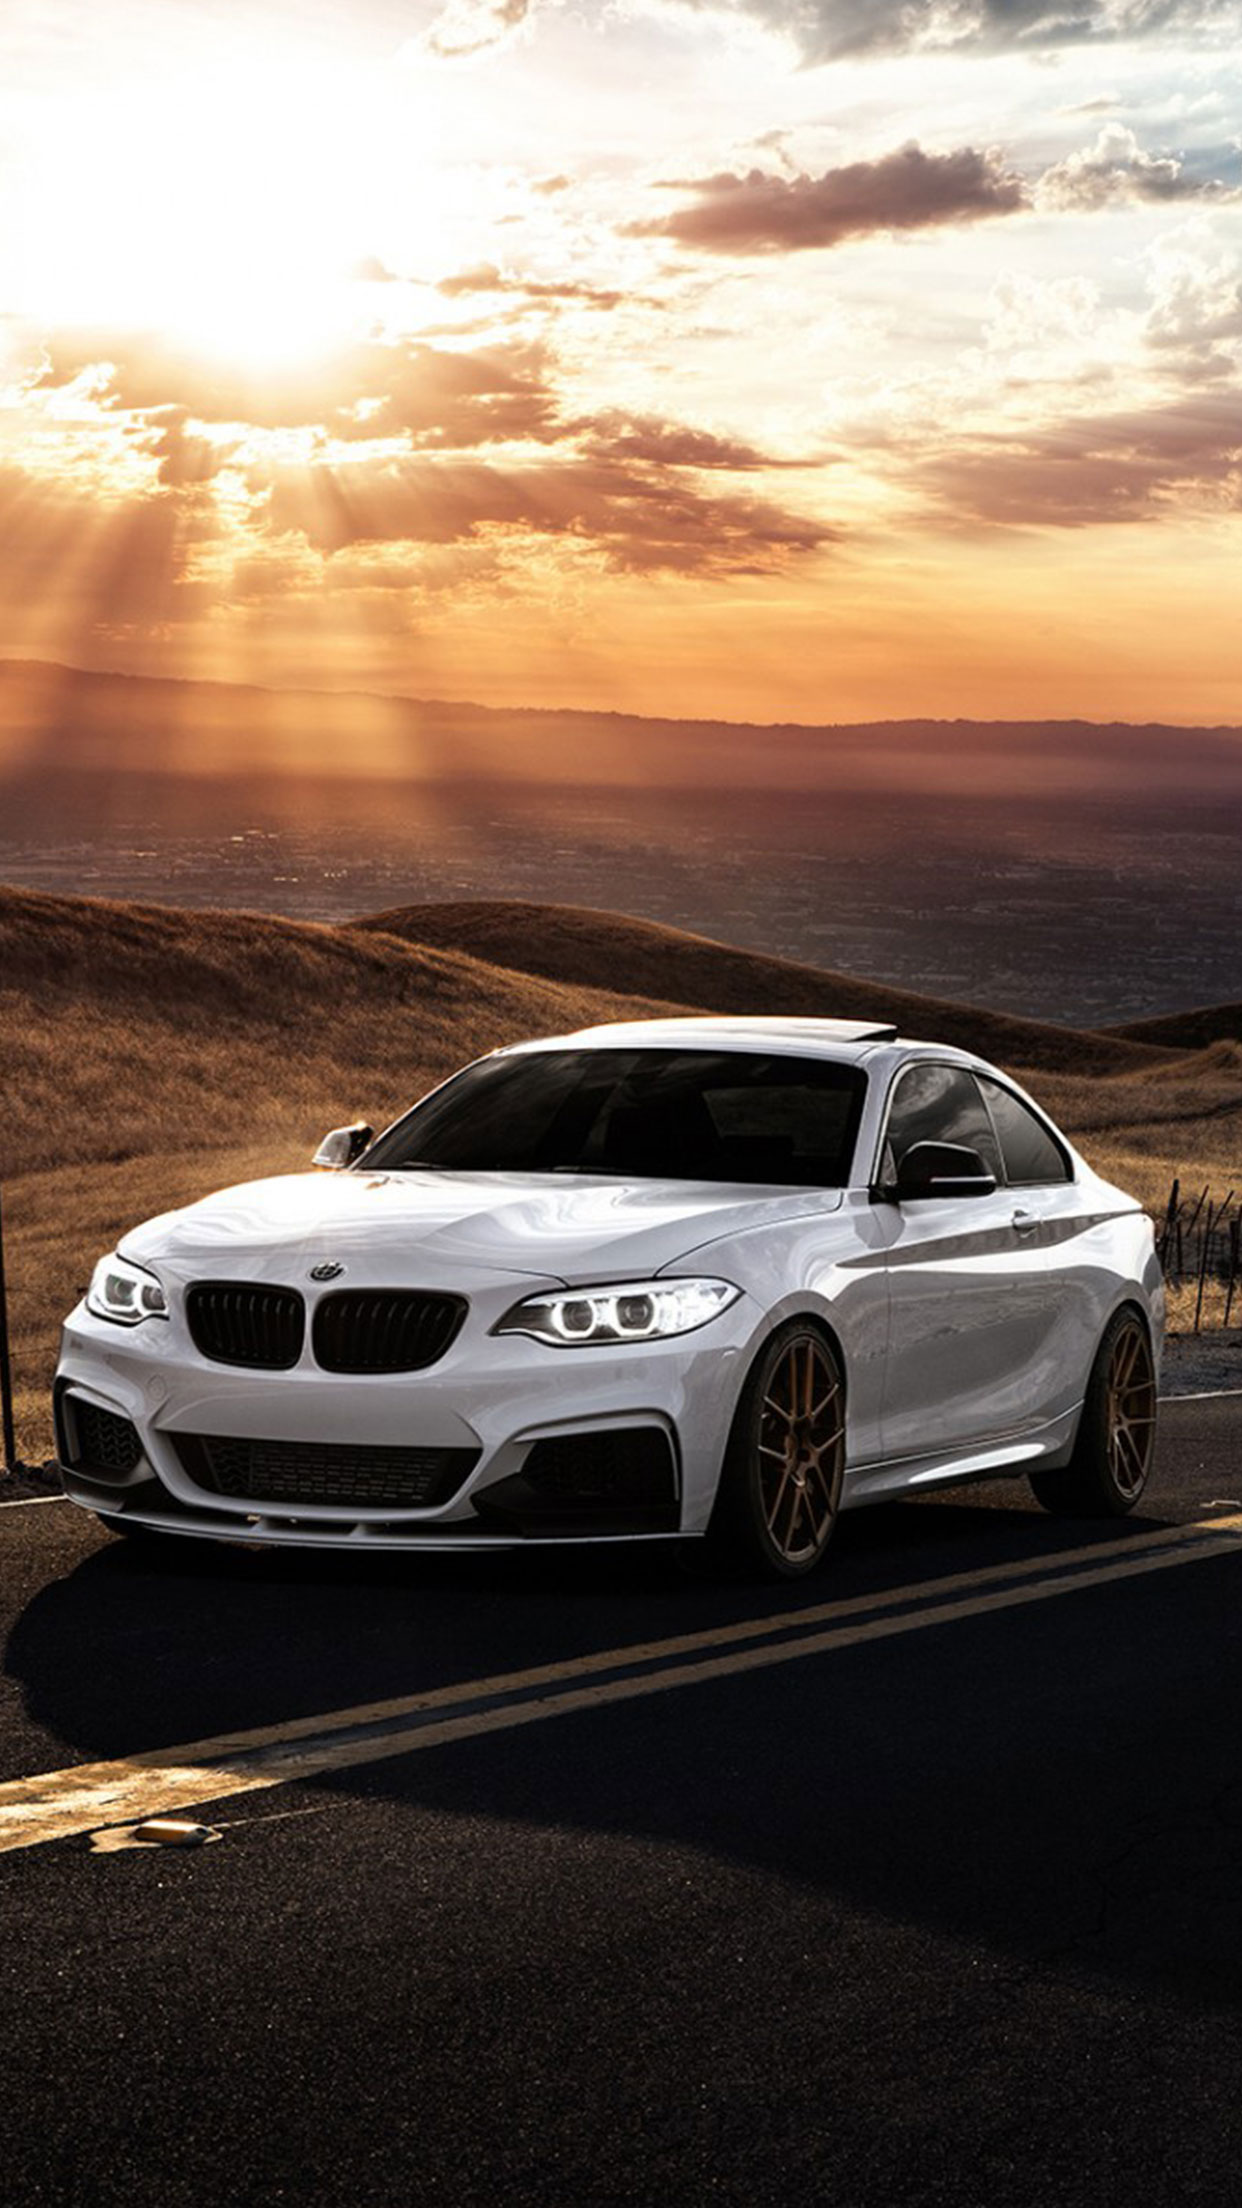 White Bmw Wallpaper Iphone , HD Wallpaper & Backgrounds